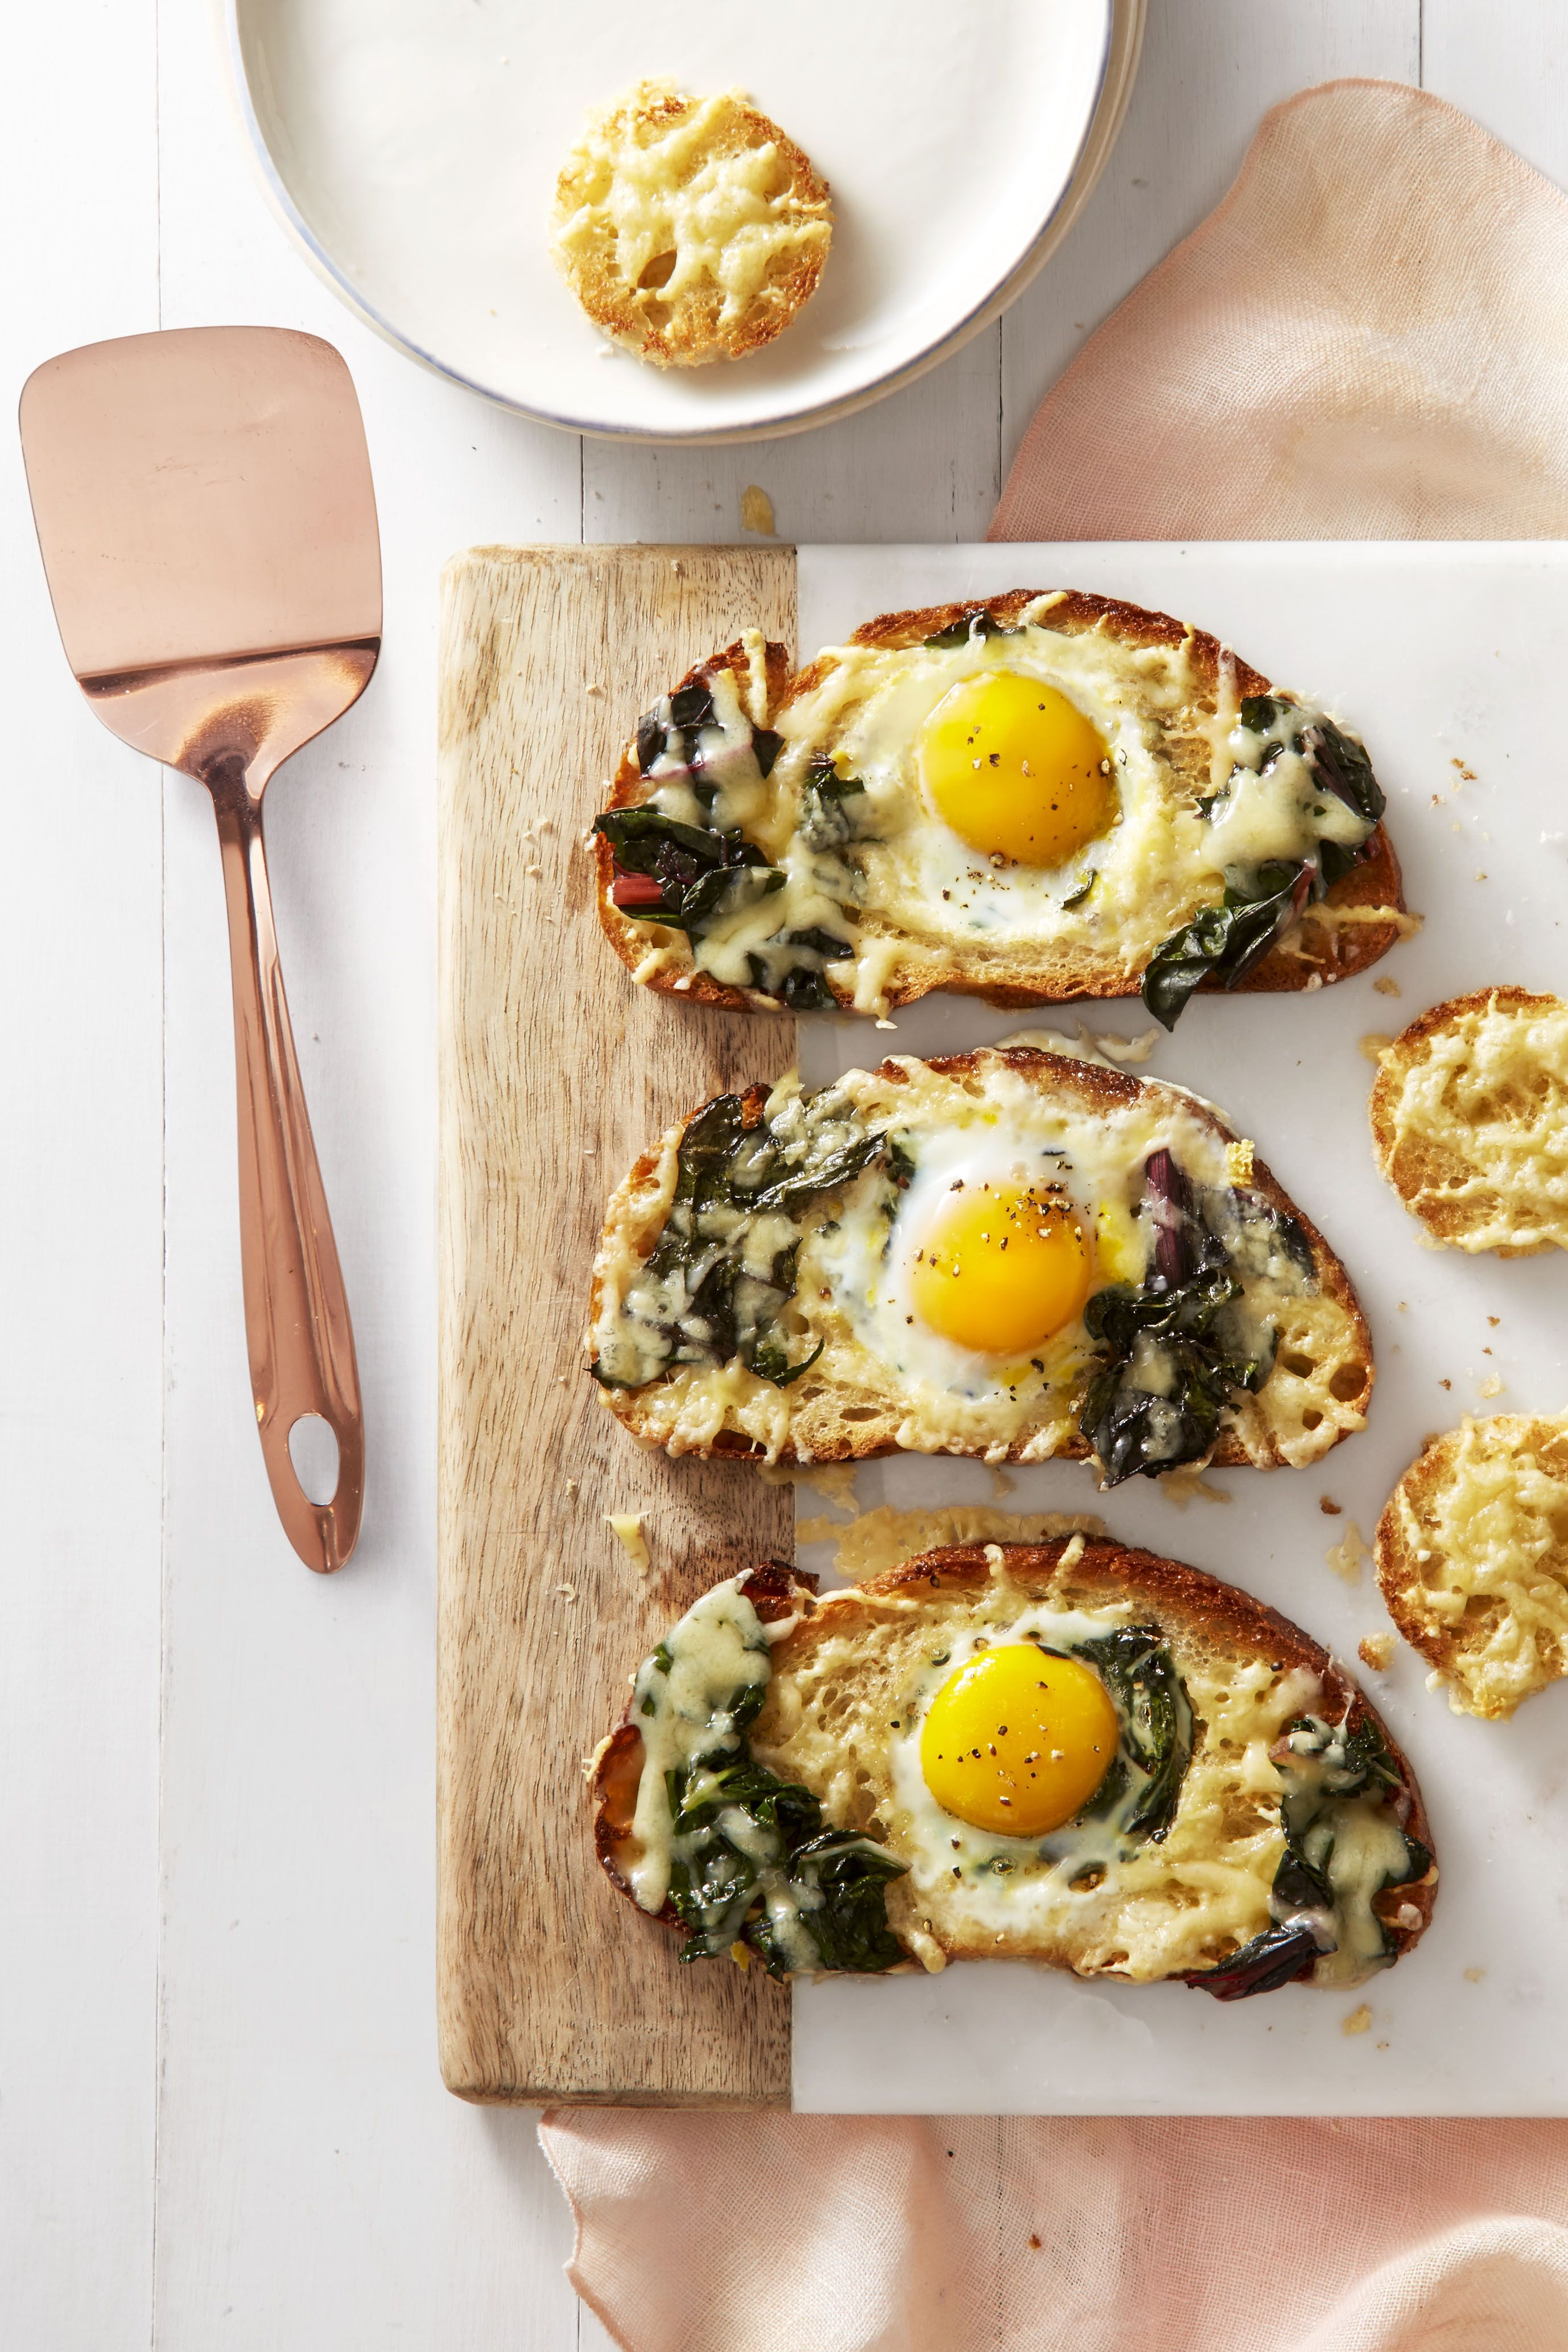 Chard and Gruyère Eggs in the Hole - Hard Boiled Eggs